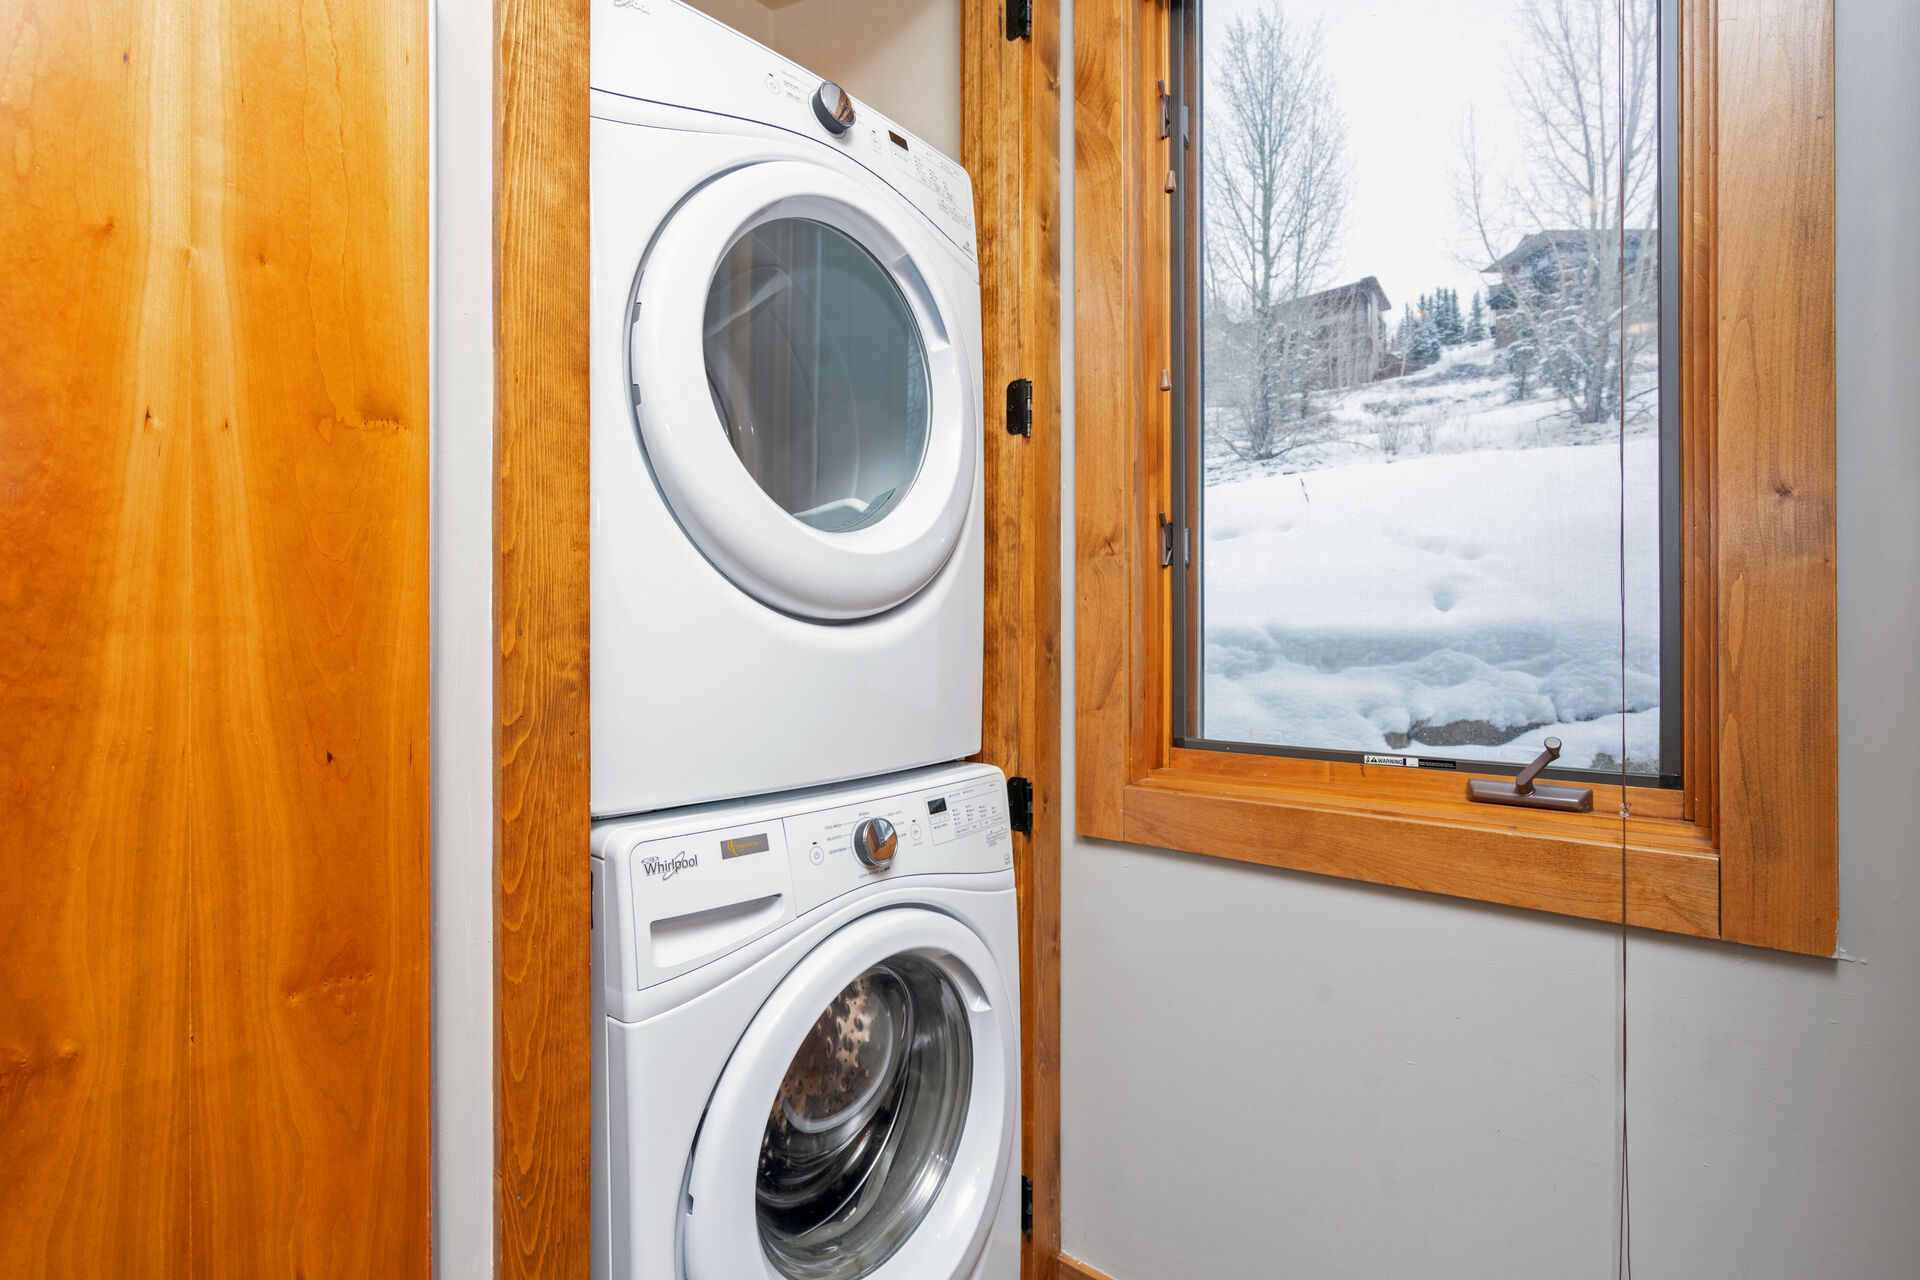 Full-sized stacked washer and dryer next to window with snow view